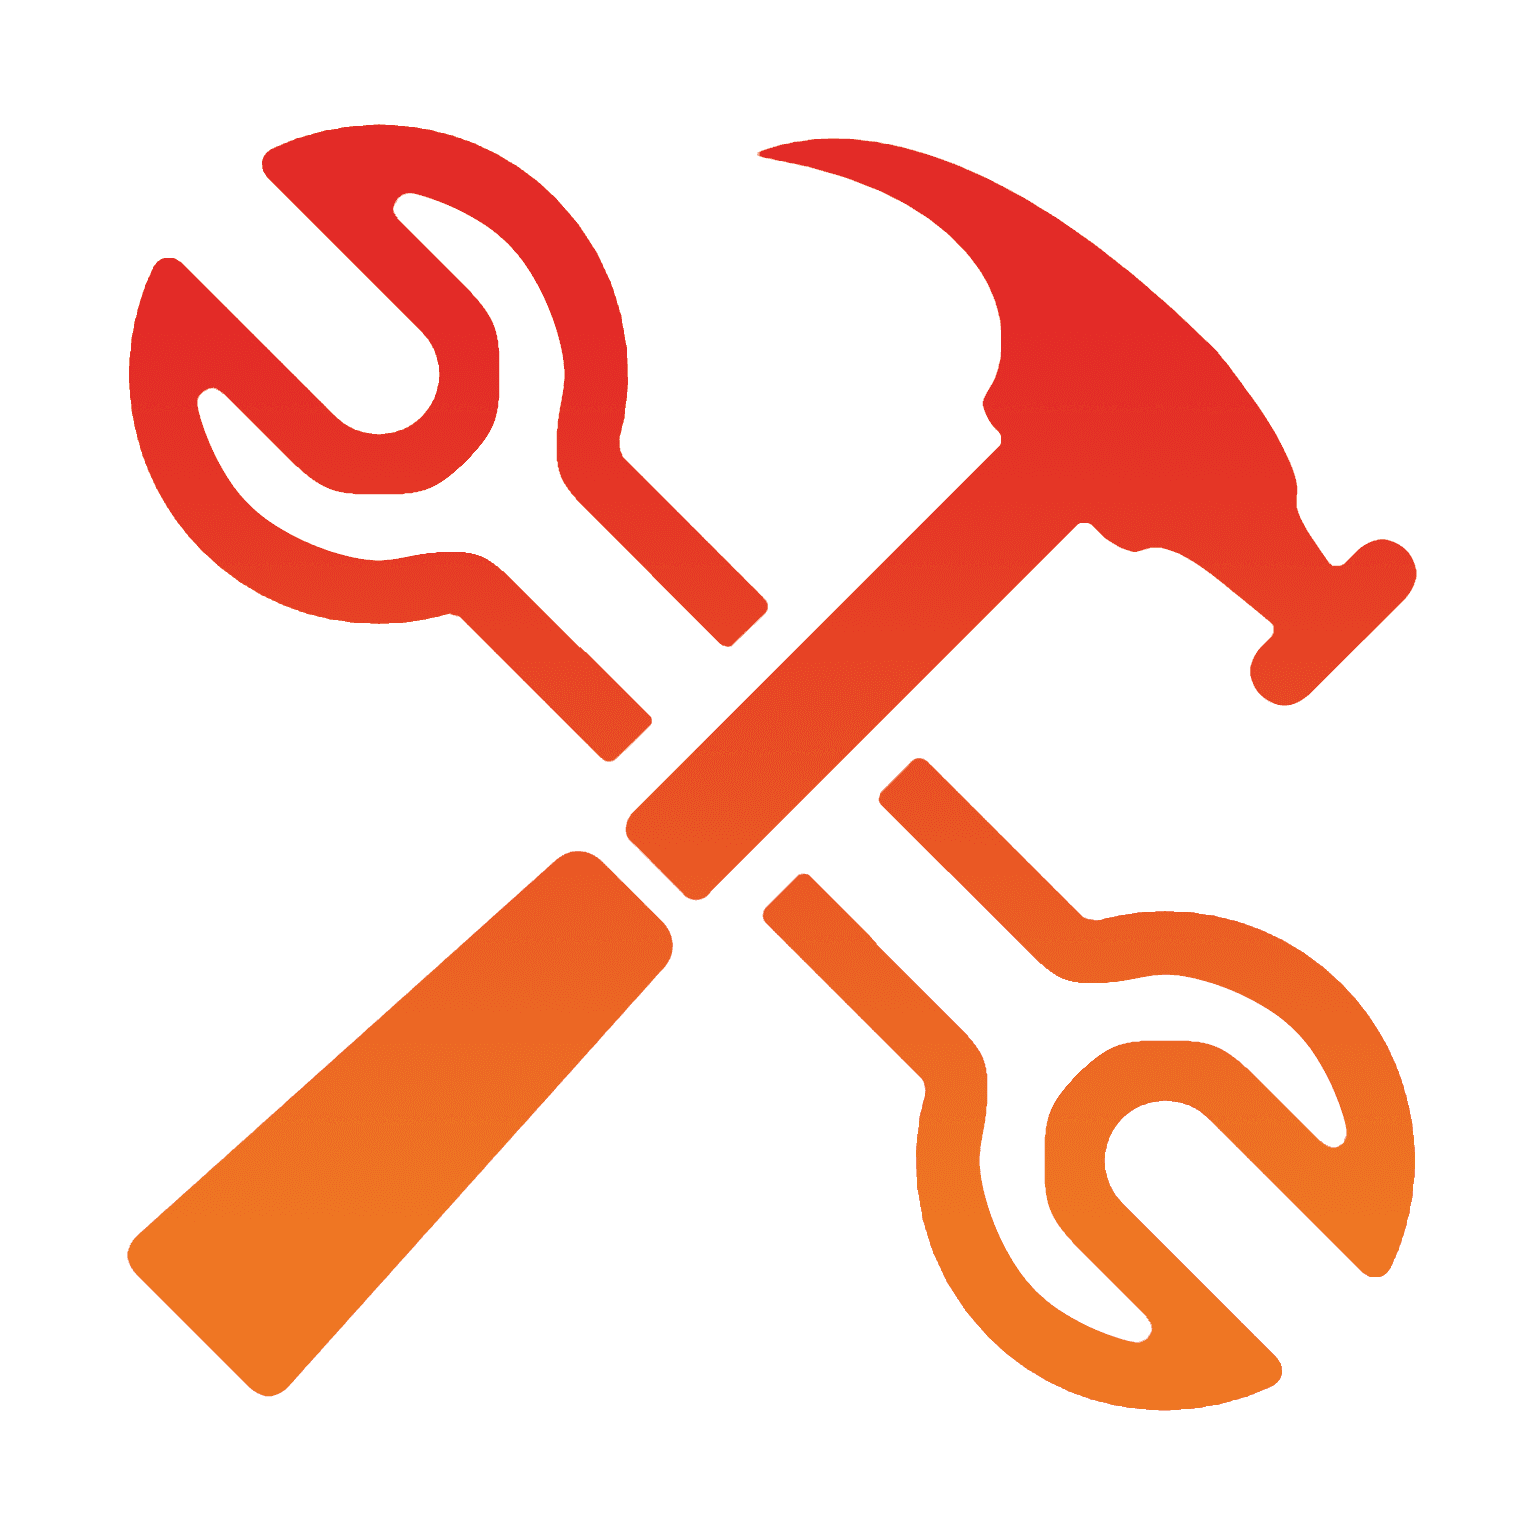 Handyman outline png compressor